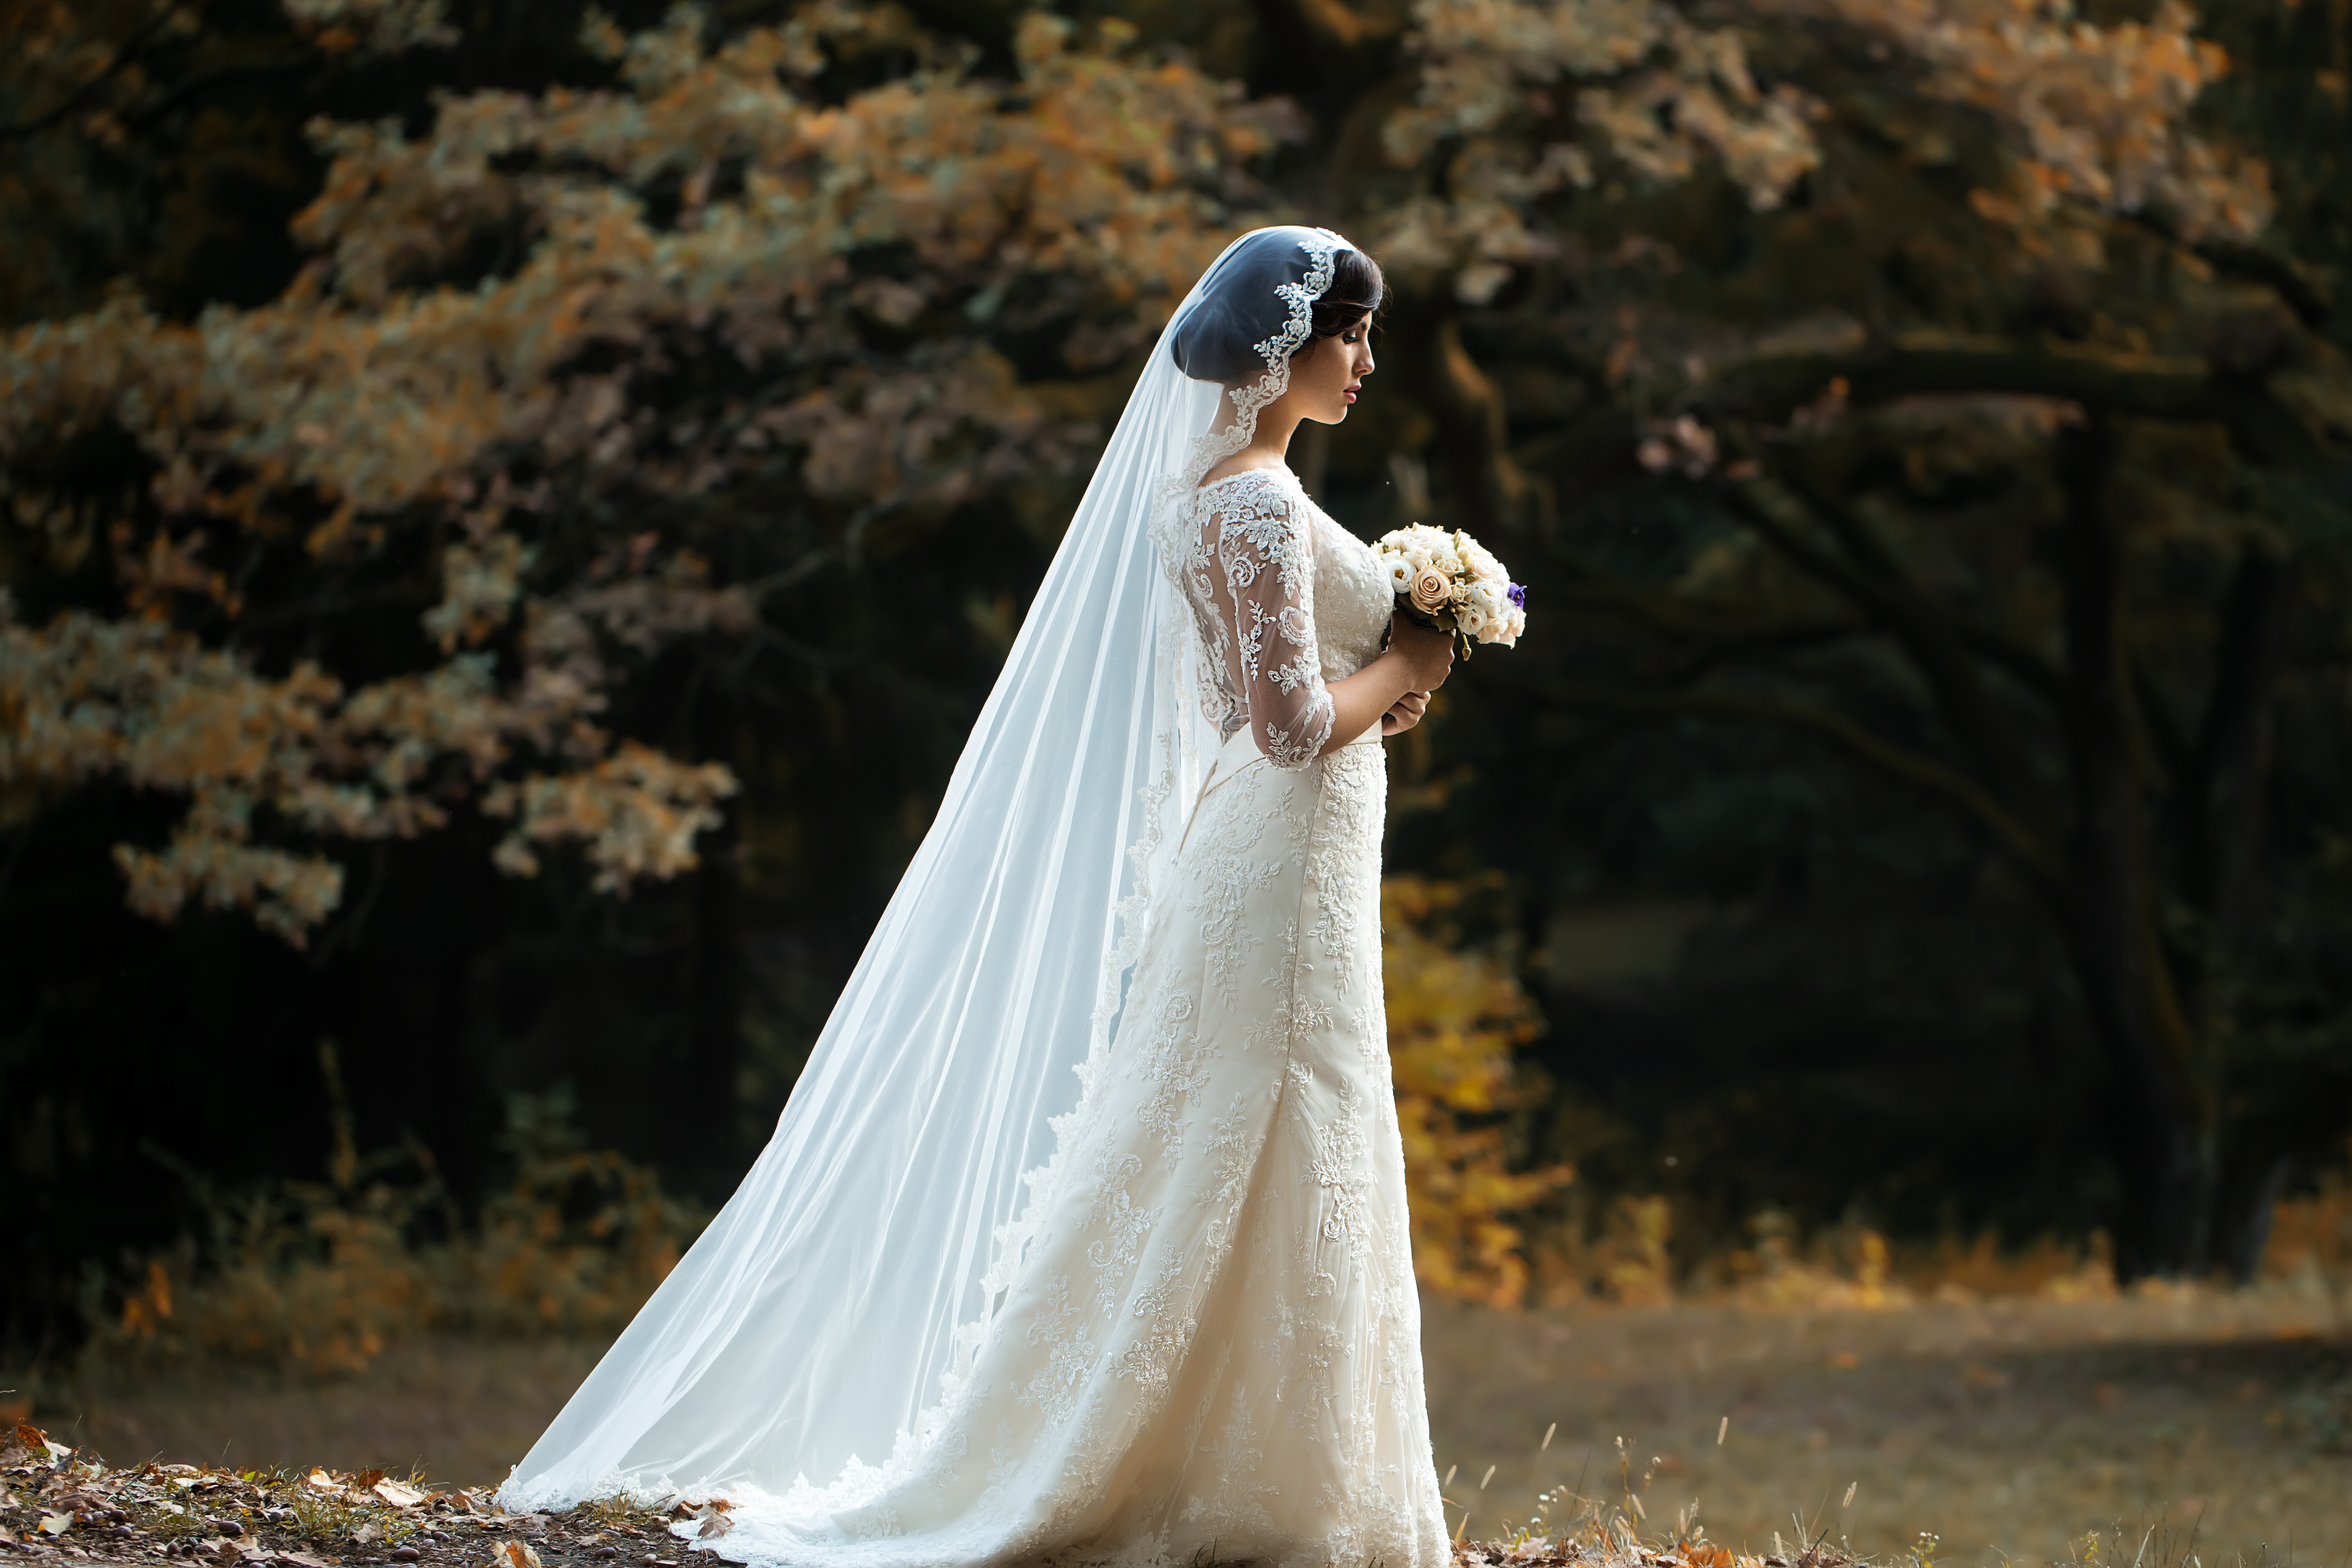 Picking the perfect veil for your wedding can be overwhelming. My guide to veil lengths will help you decide which is right for you. Cathedral veils are absolutely stunning.